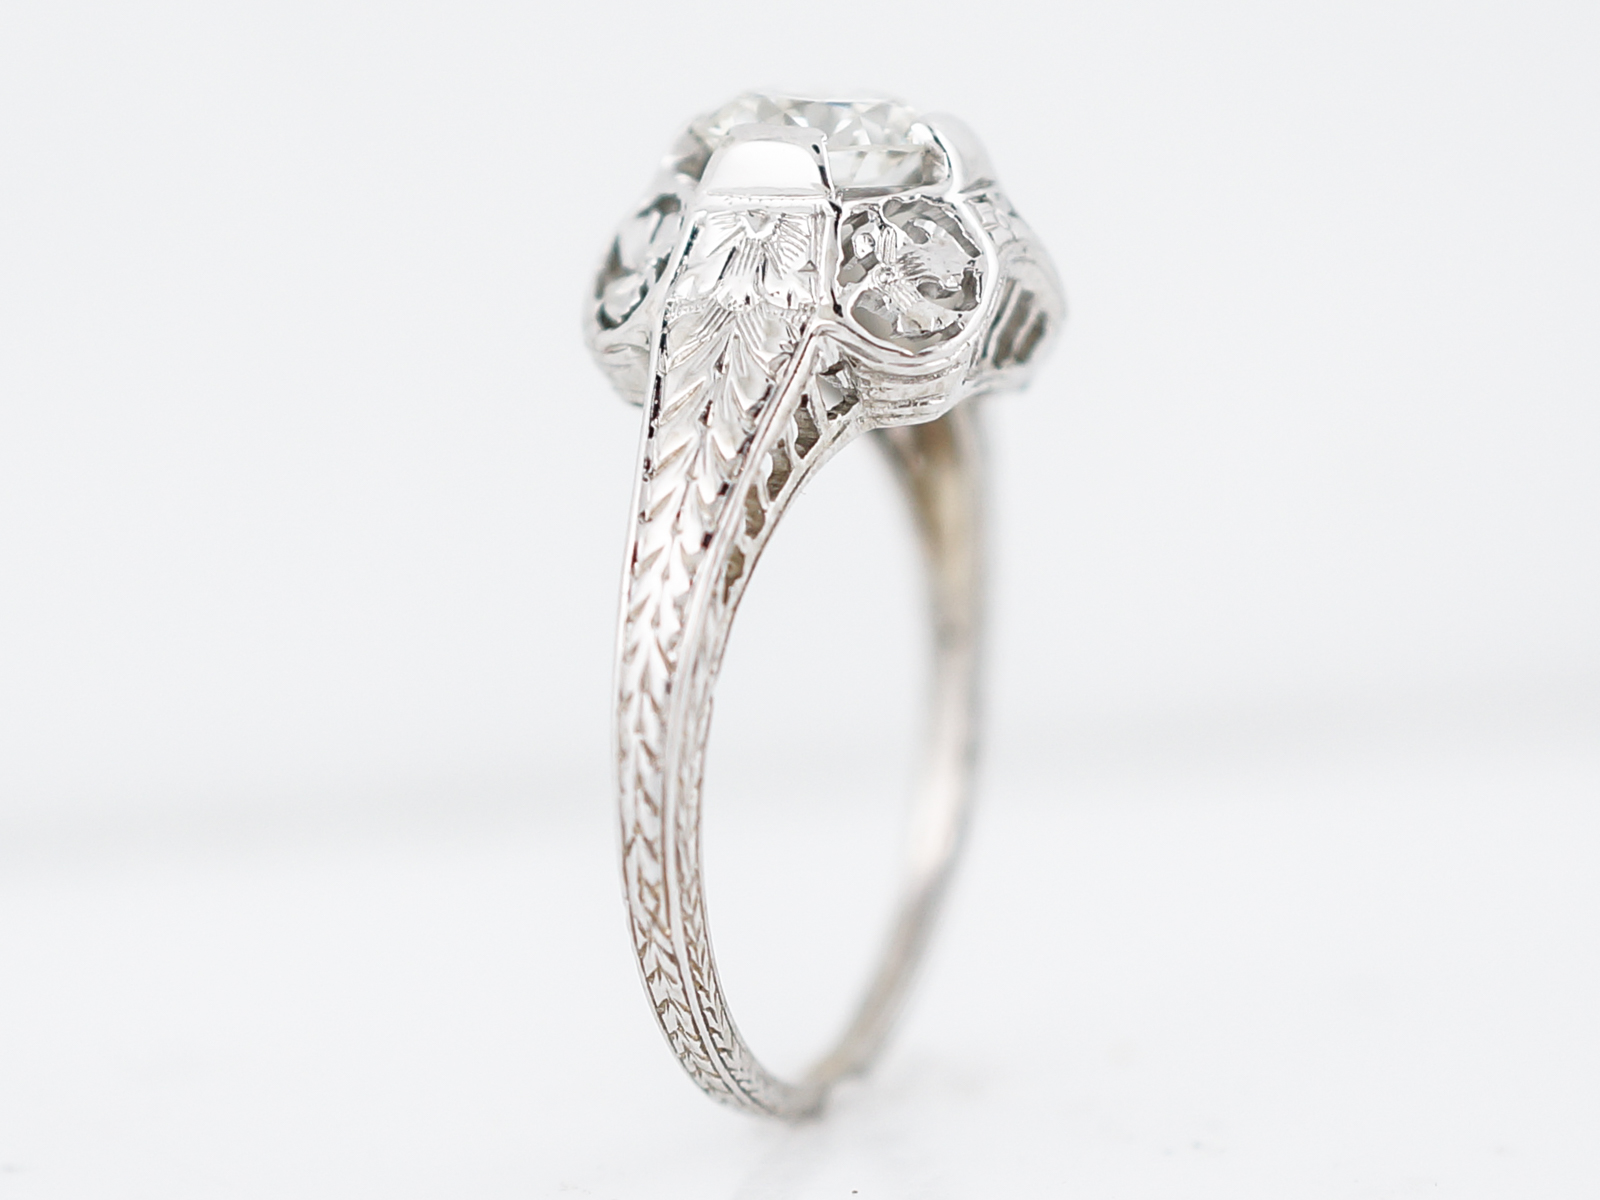 History Of Giving Diamond Engagement Rings